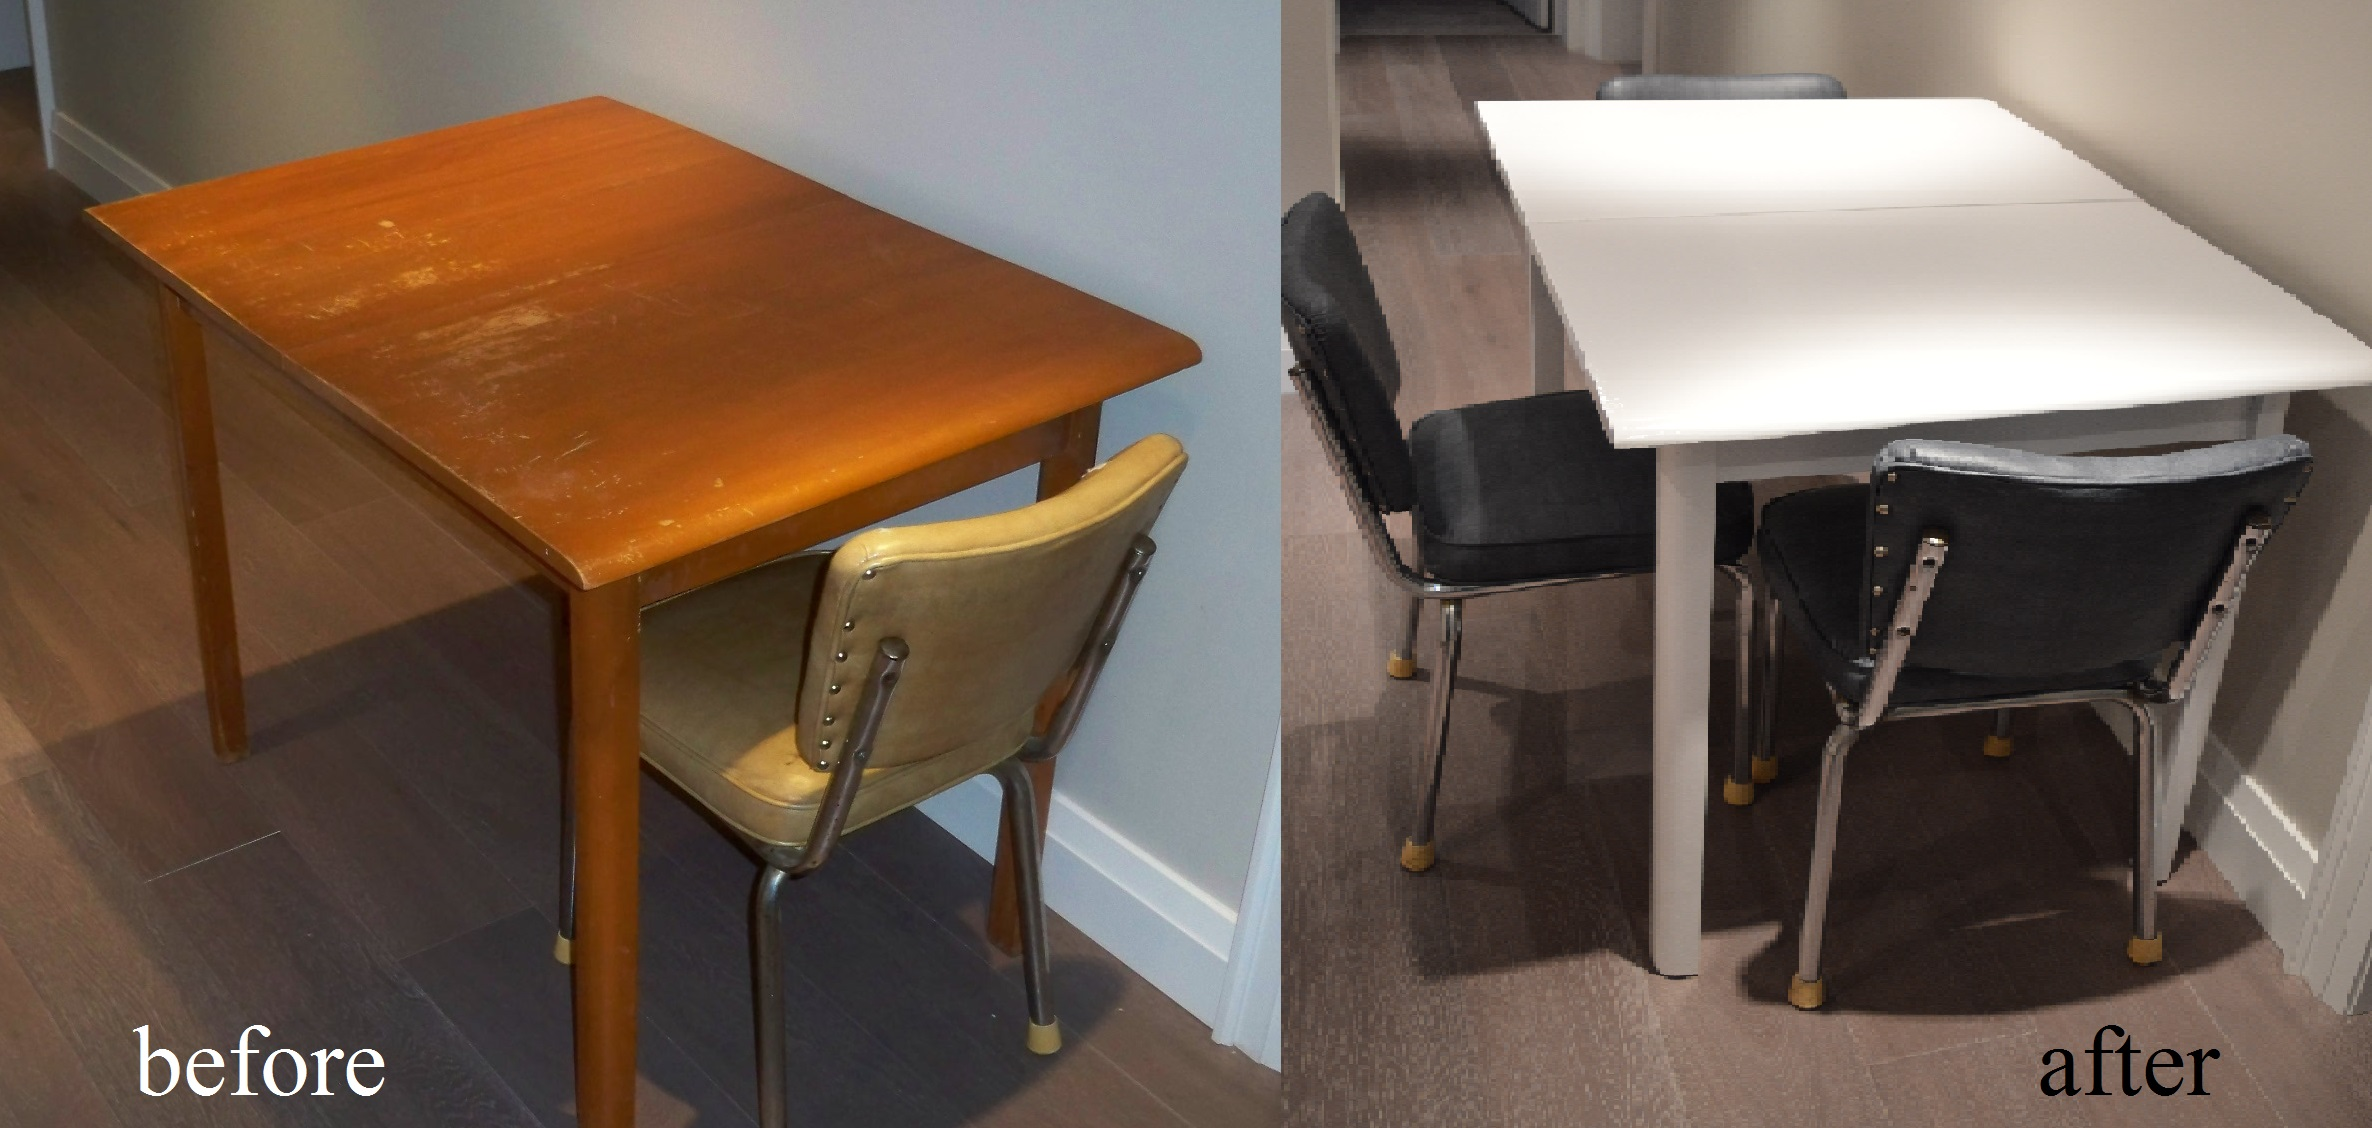 Murals By Marg repainted table before and after